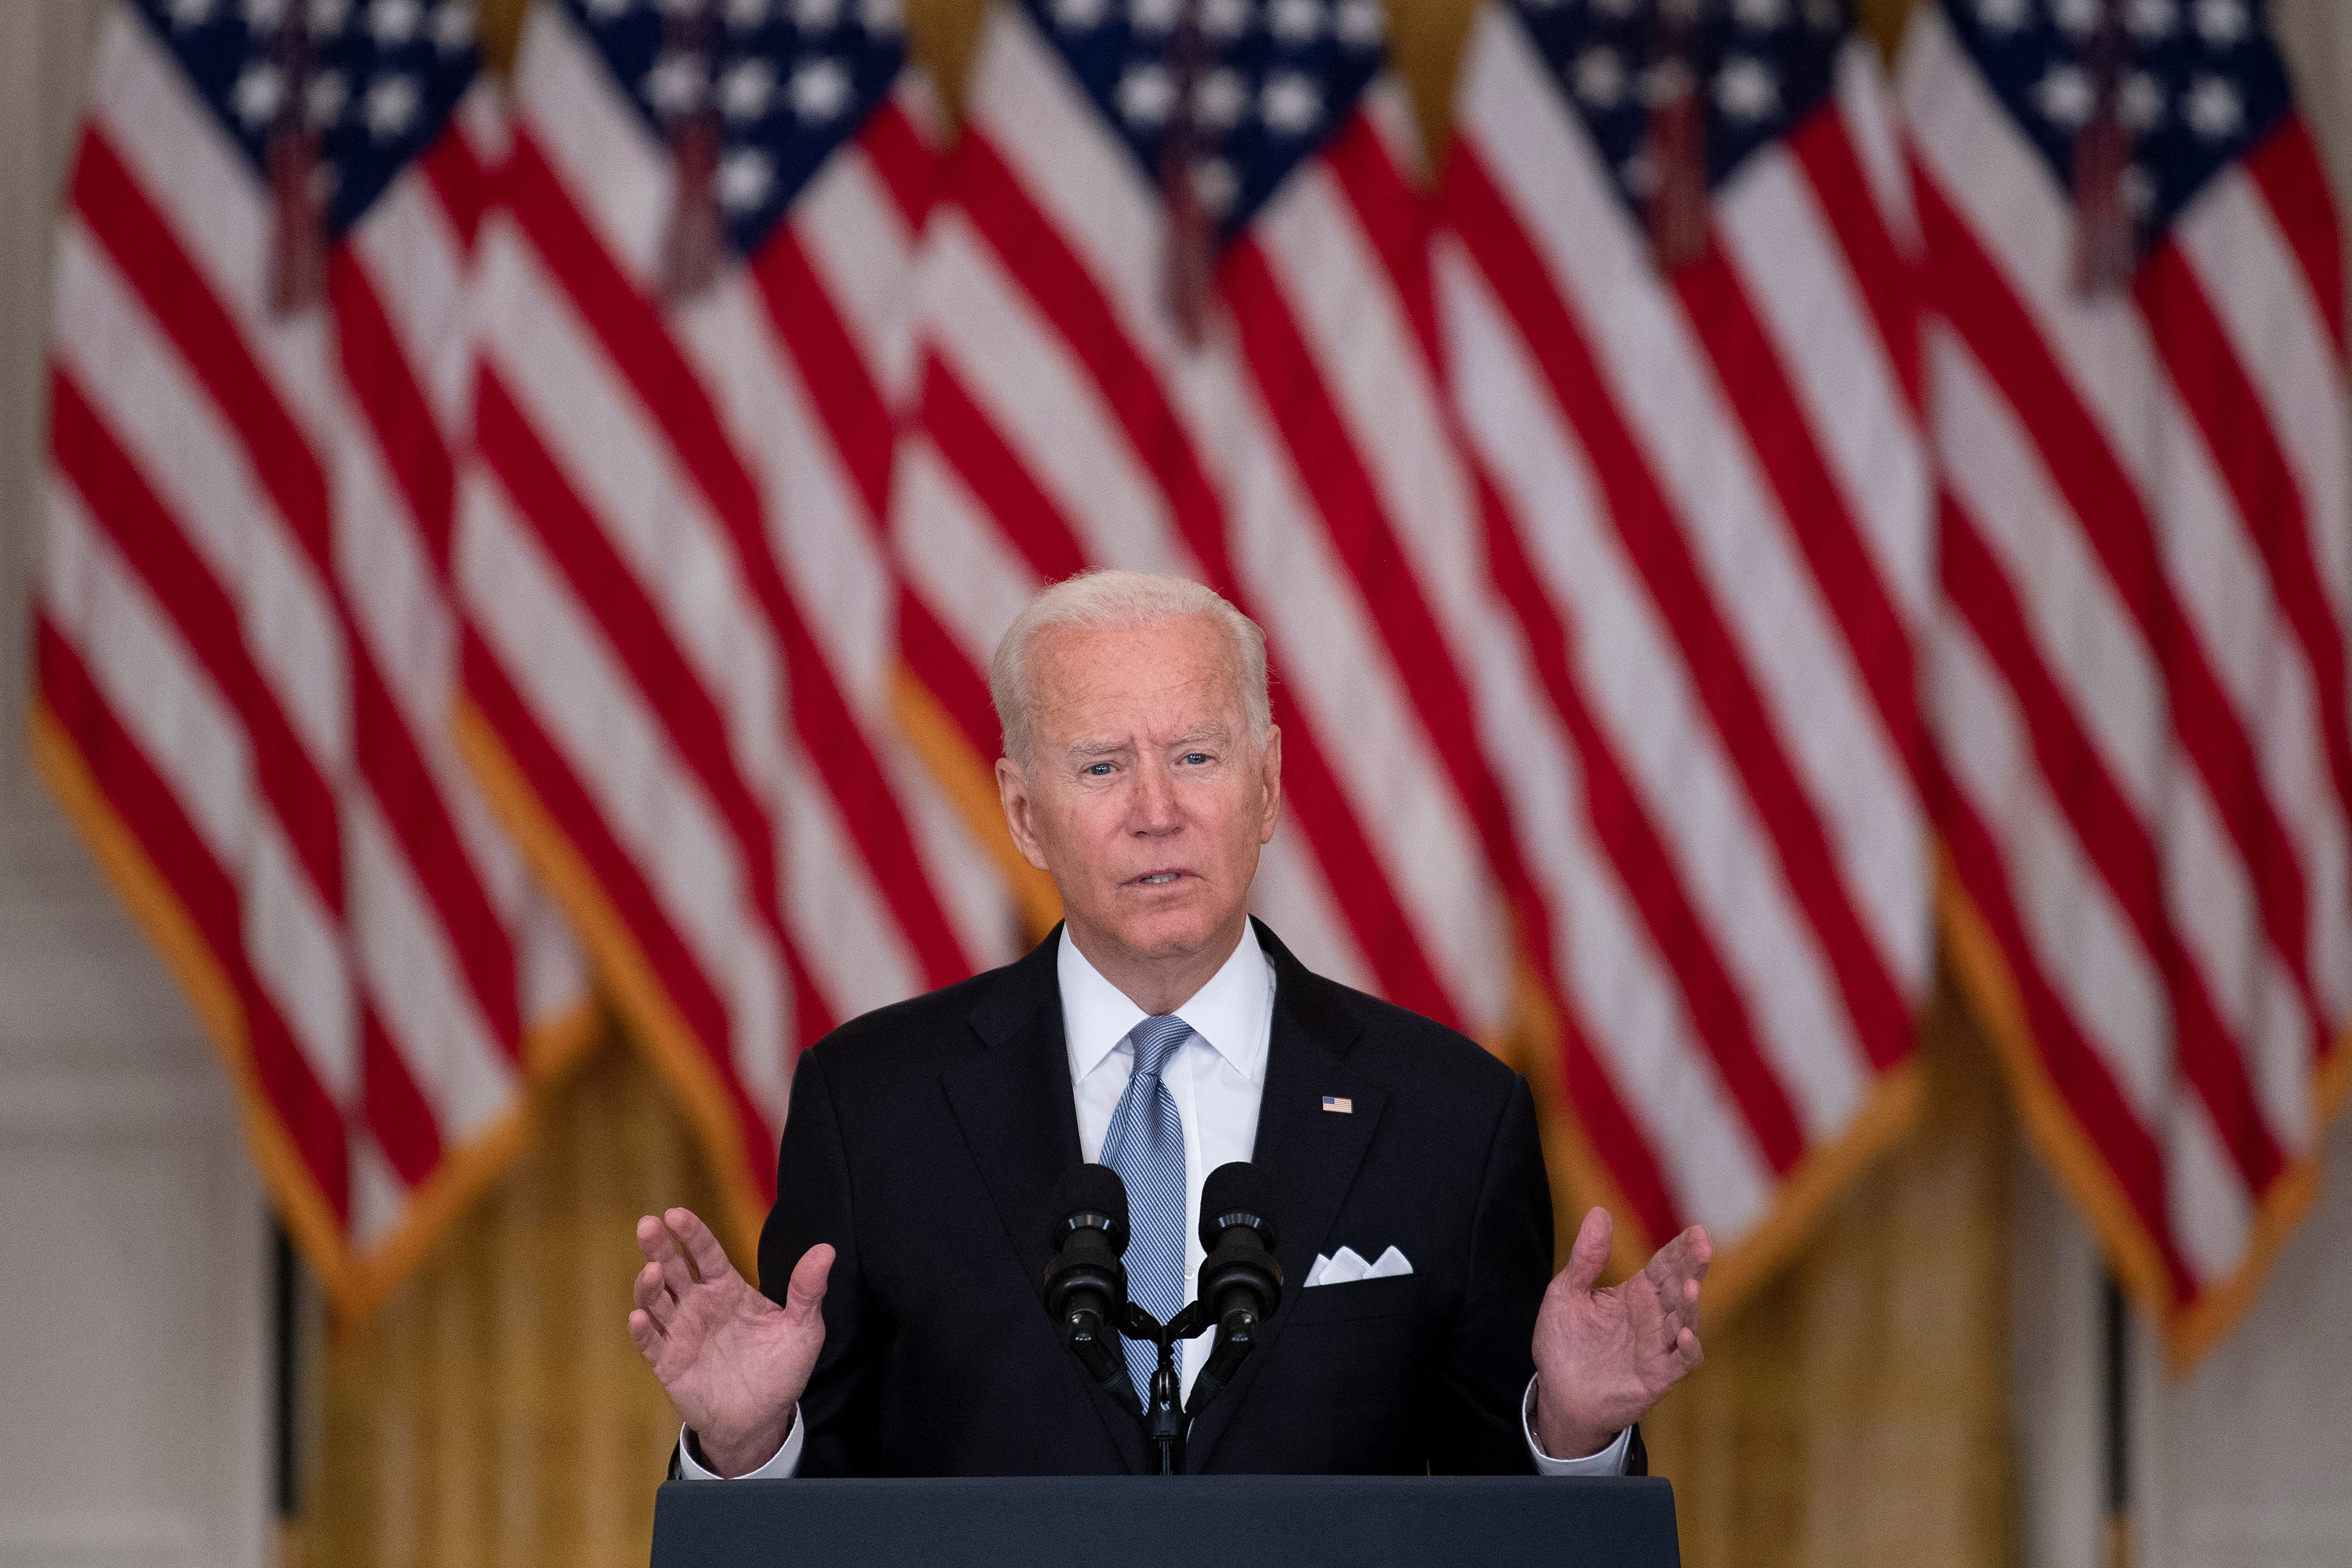 Joe Biden speaks about the Taliban's takeover of Afghanistan from the East Room of the White House in Washington, D.C. (Photo by BRENDAN SMIALOWSKI/AFP via Getty Images)